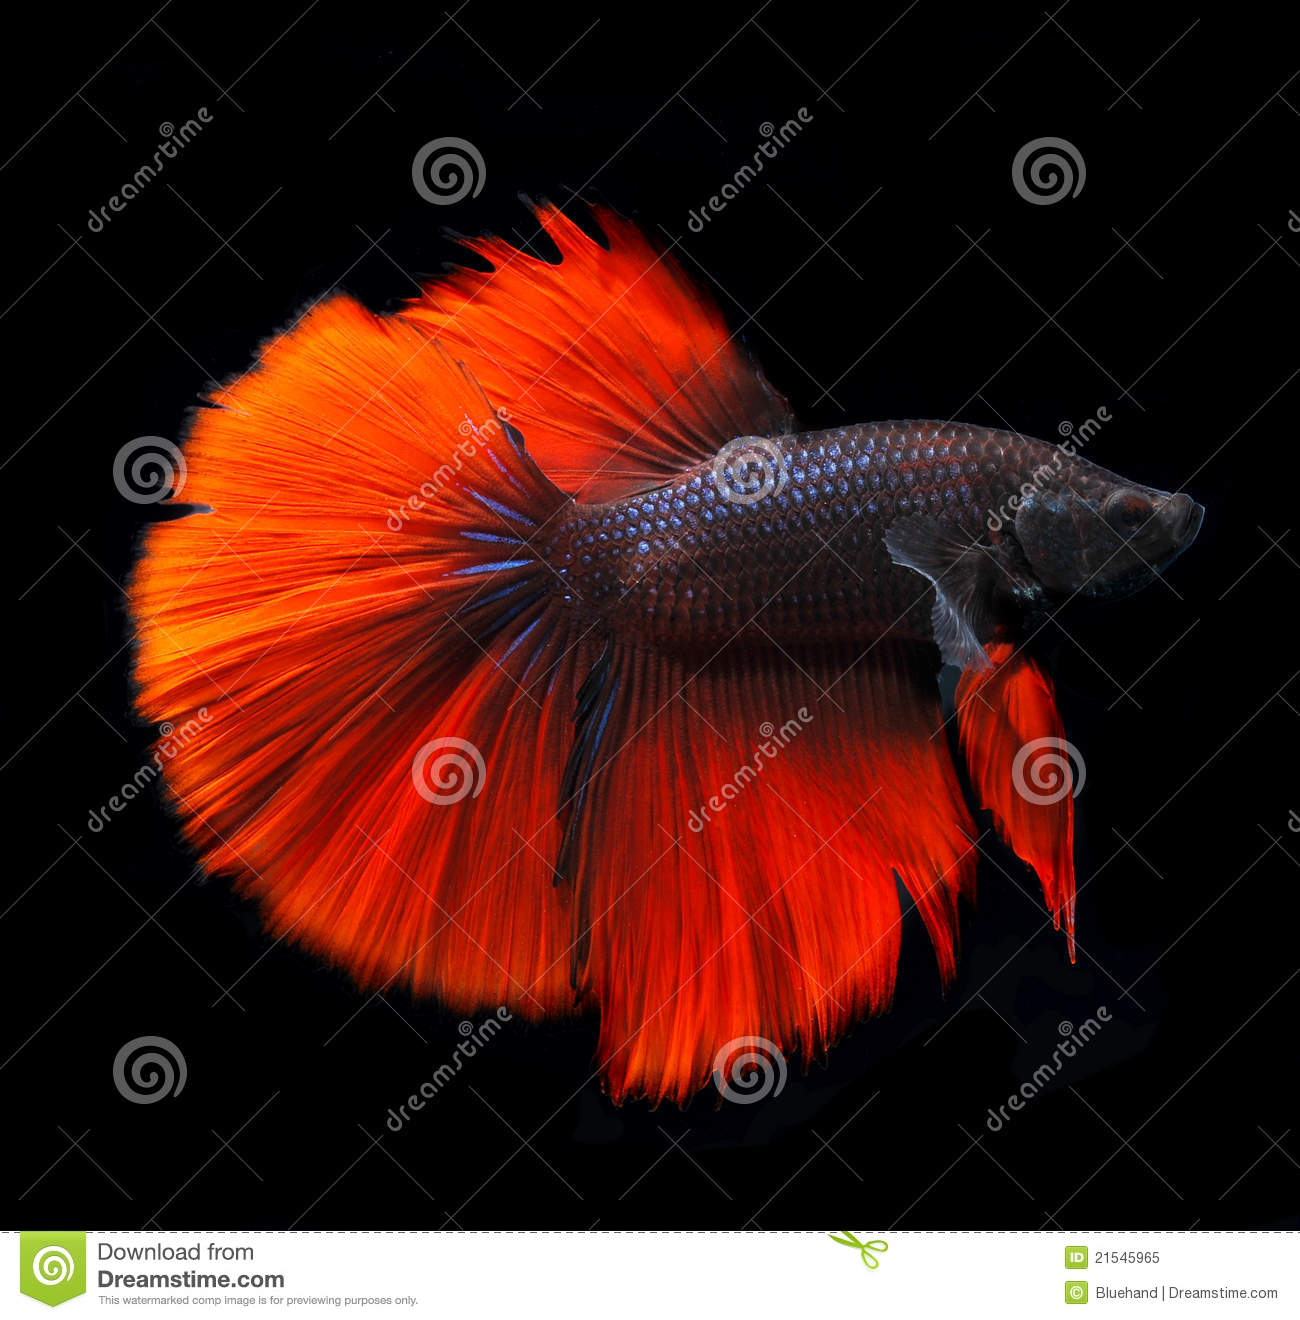 650 Betta Fish Names for All Different Types and Colors